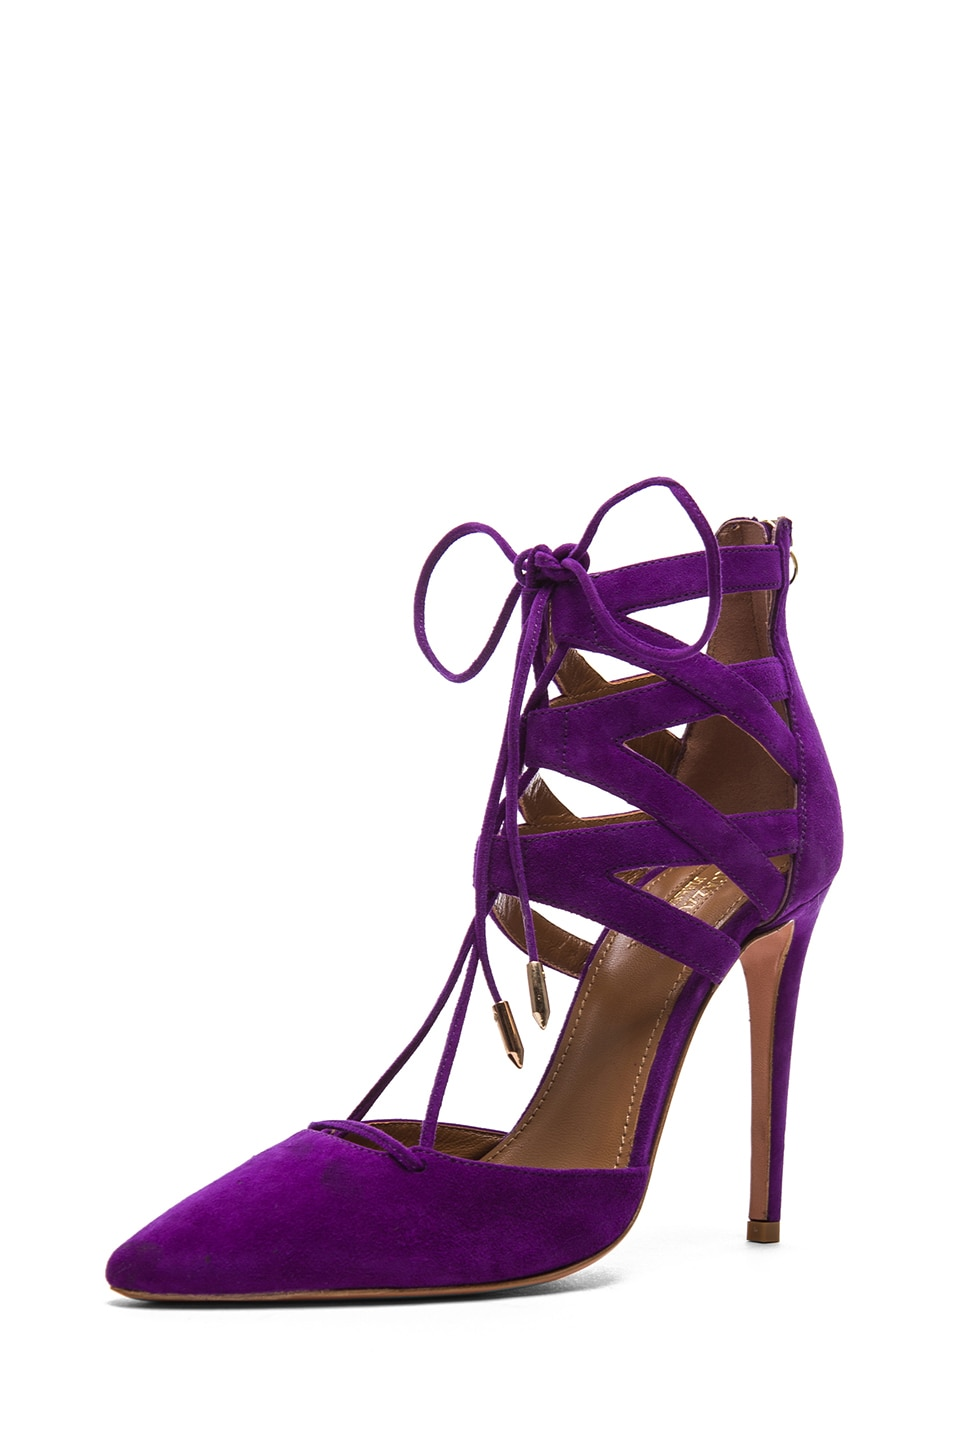 Image 1 of Aquazzura Belgravia Suede Lace Up Pumps in Violet